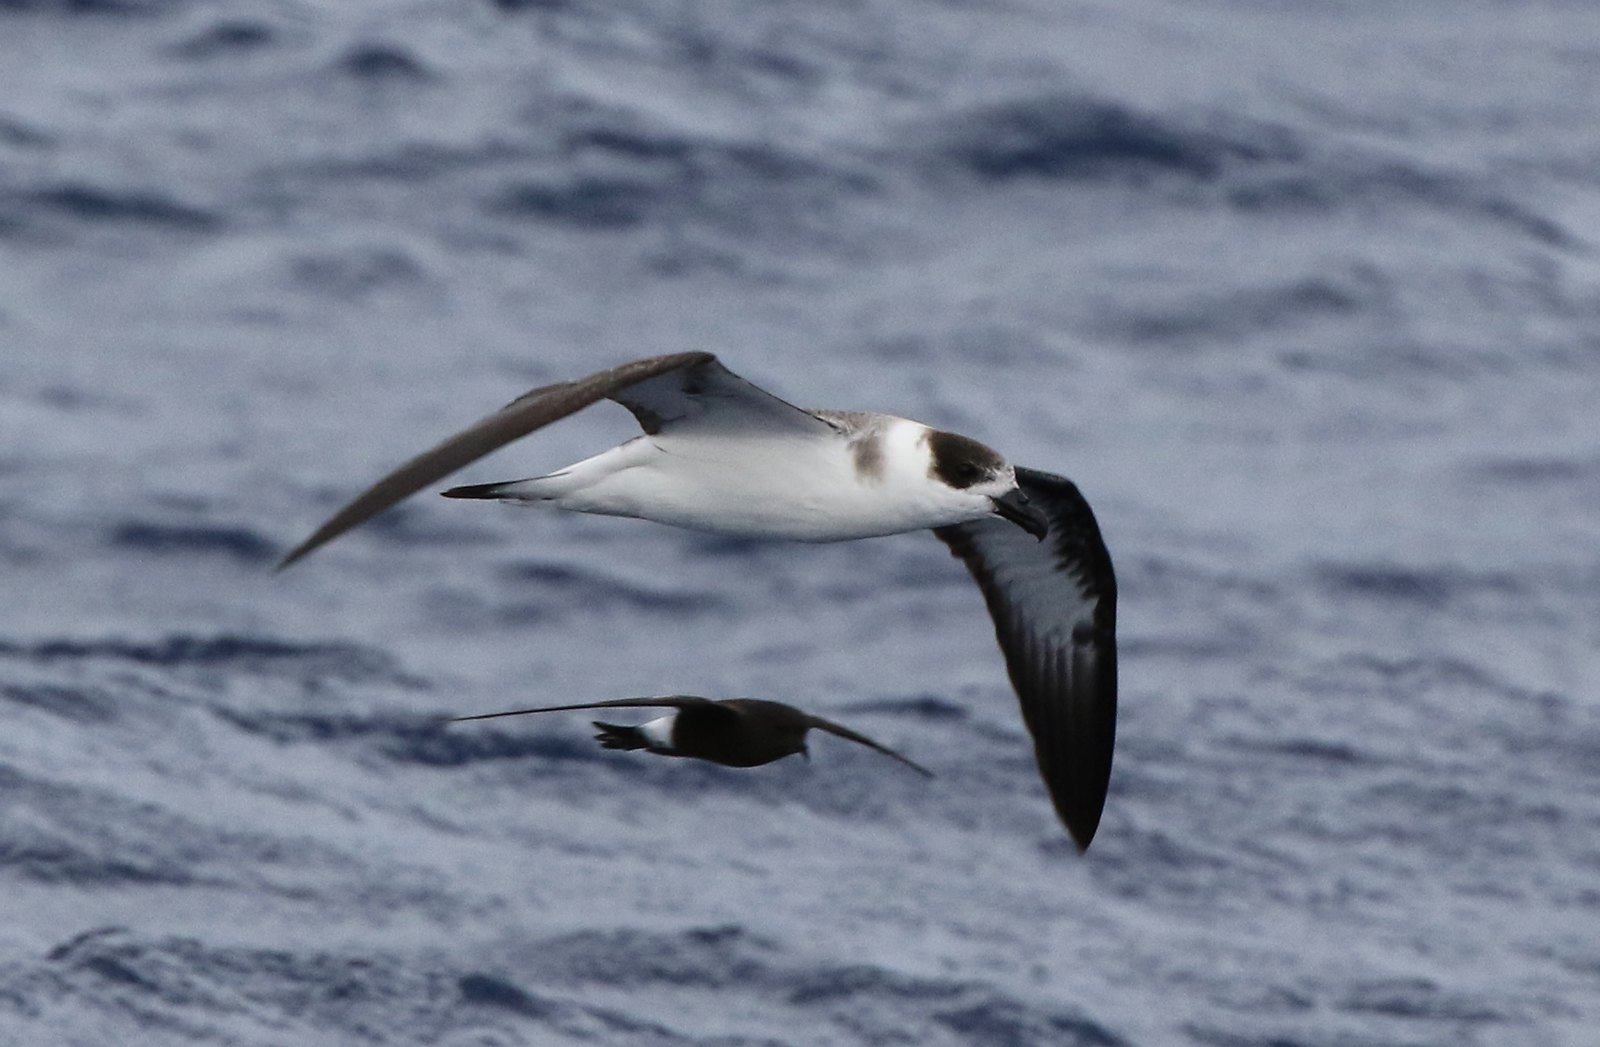 Tracking And Movement Patterns Of Black-capped Petrels Captured At-sea